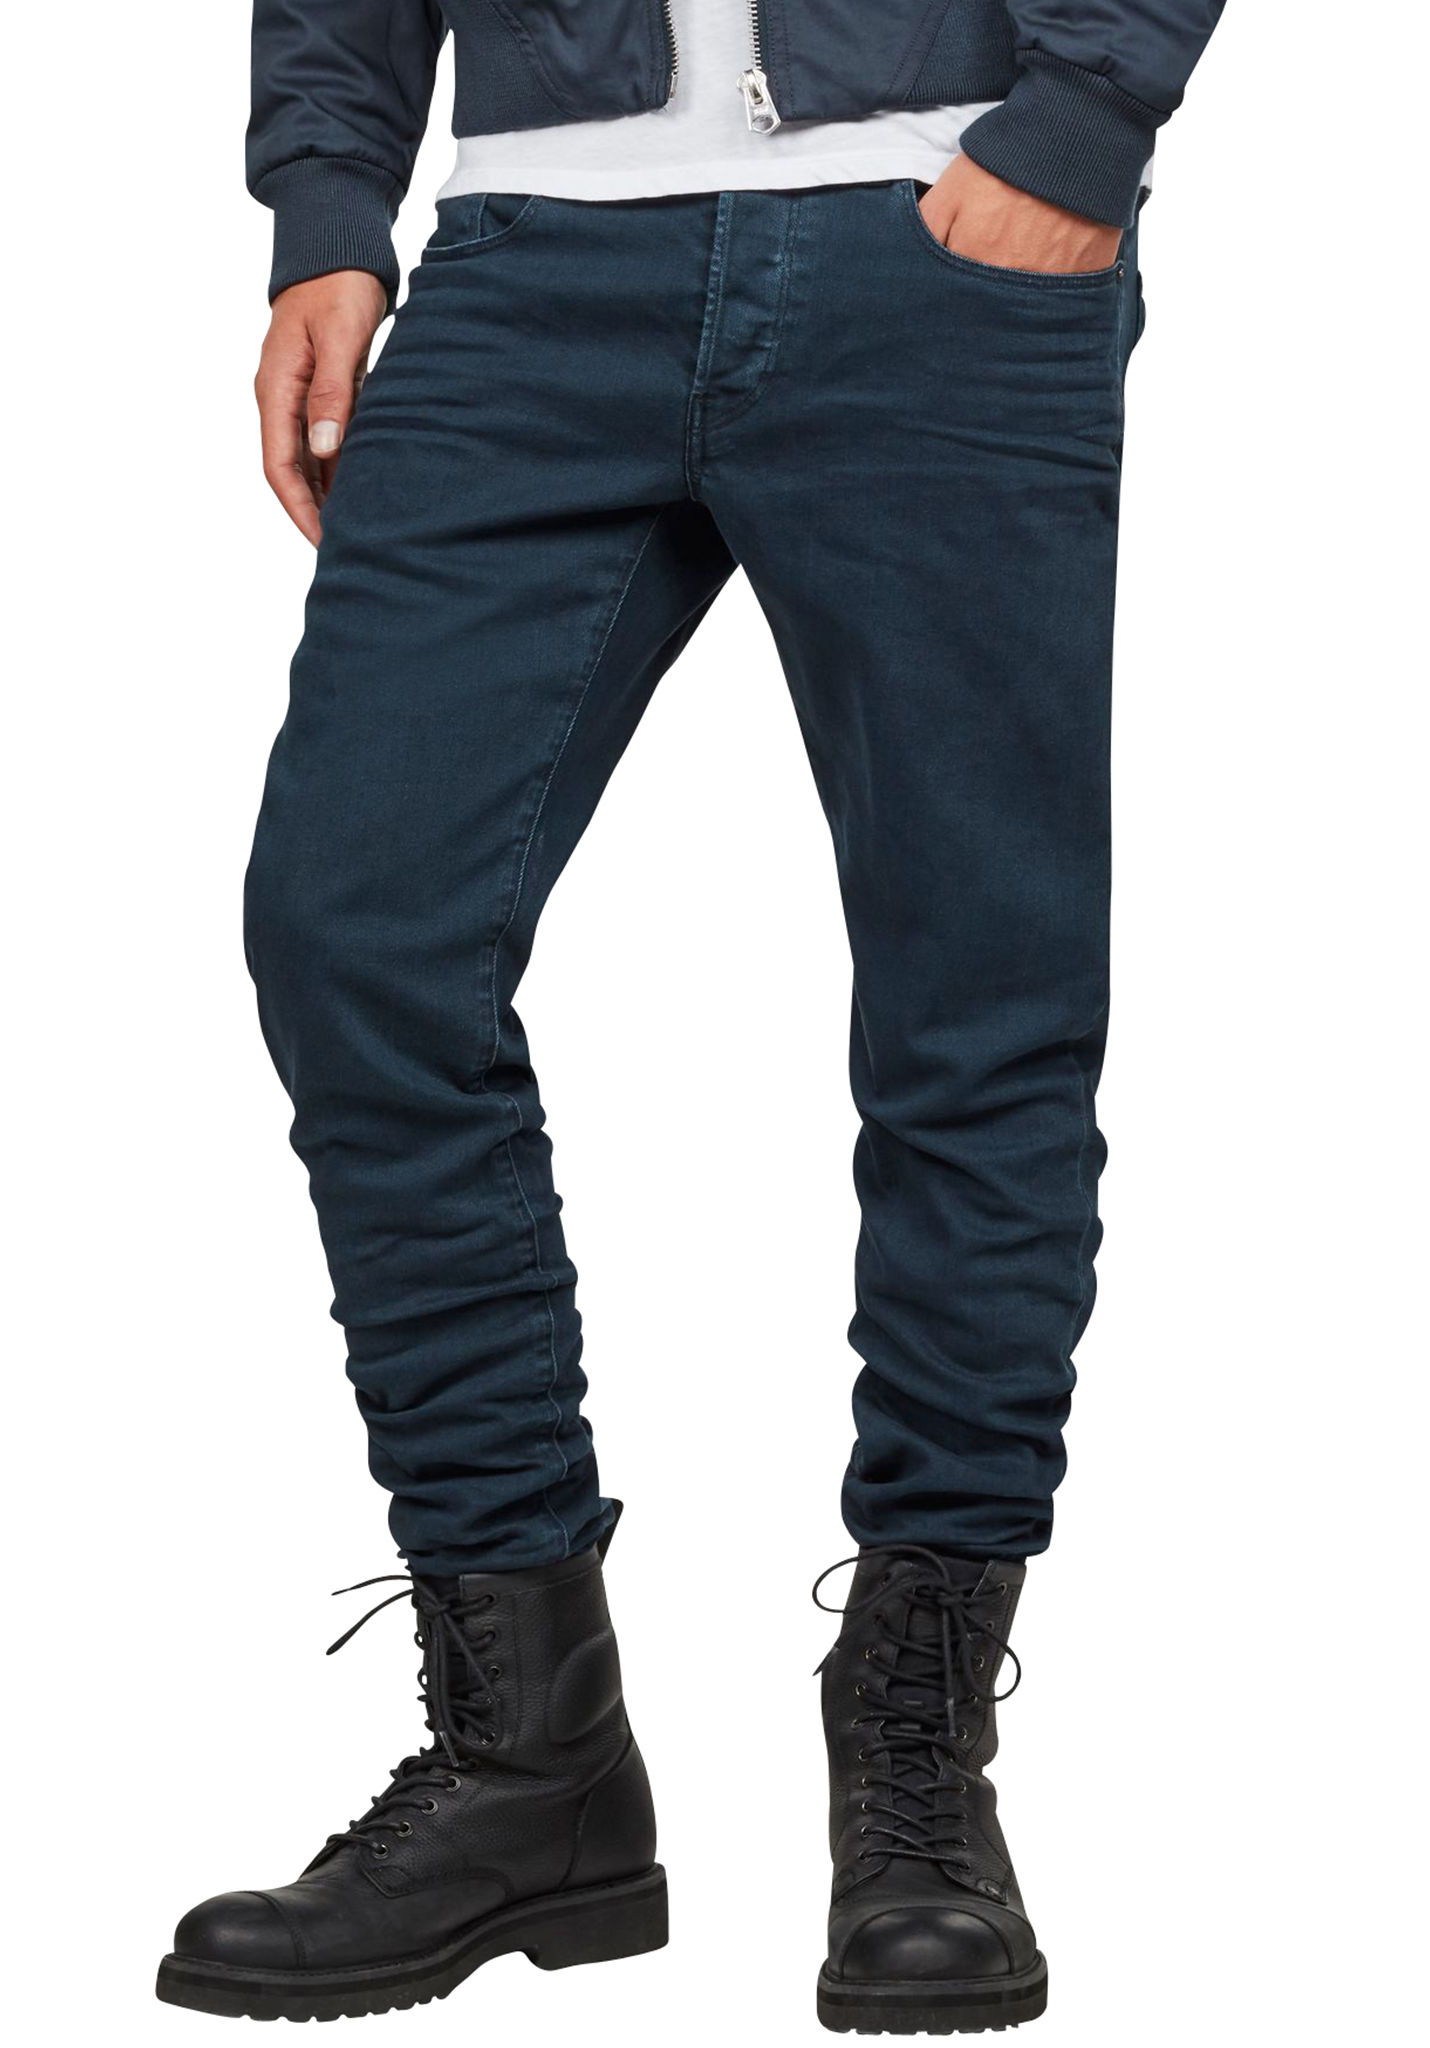 09684b916d7dd5 G-STAR 3301 Slim Coj - Trousers for Men - Blue - Planet Sports